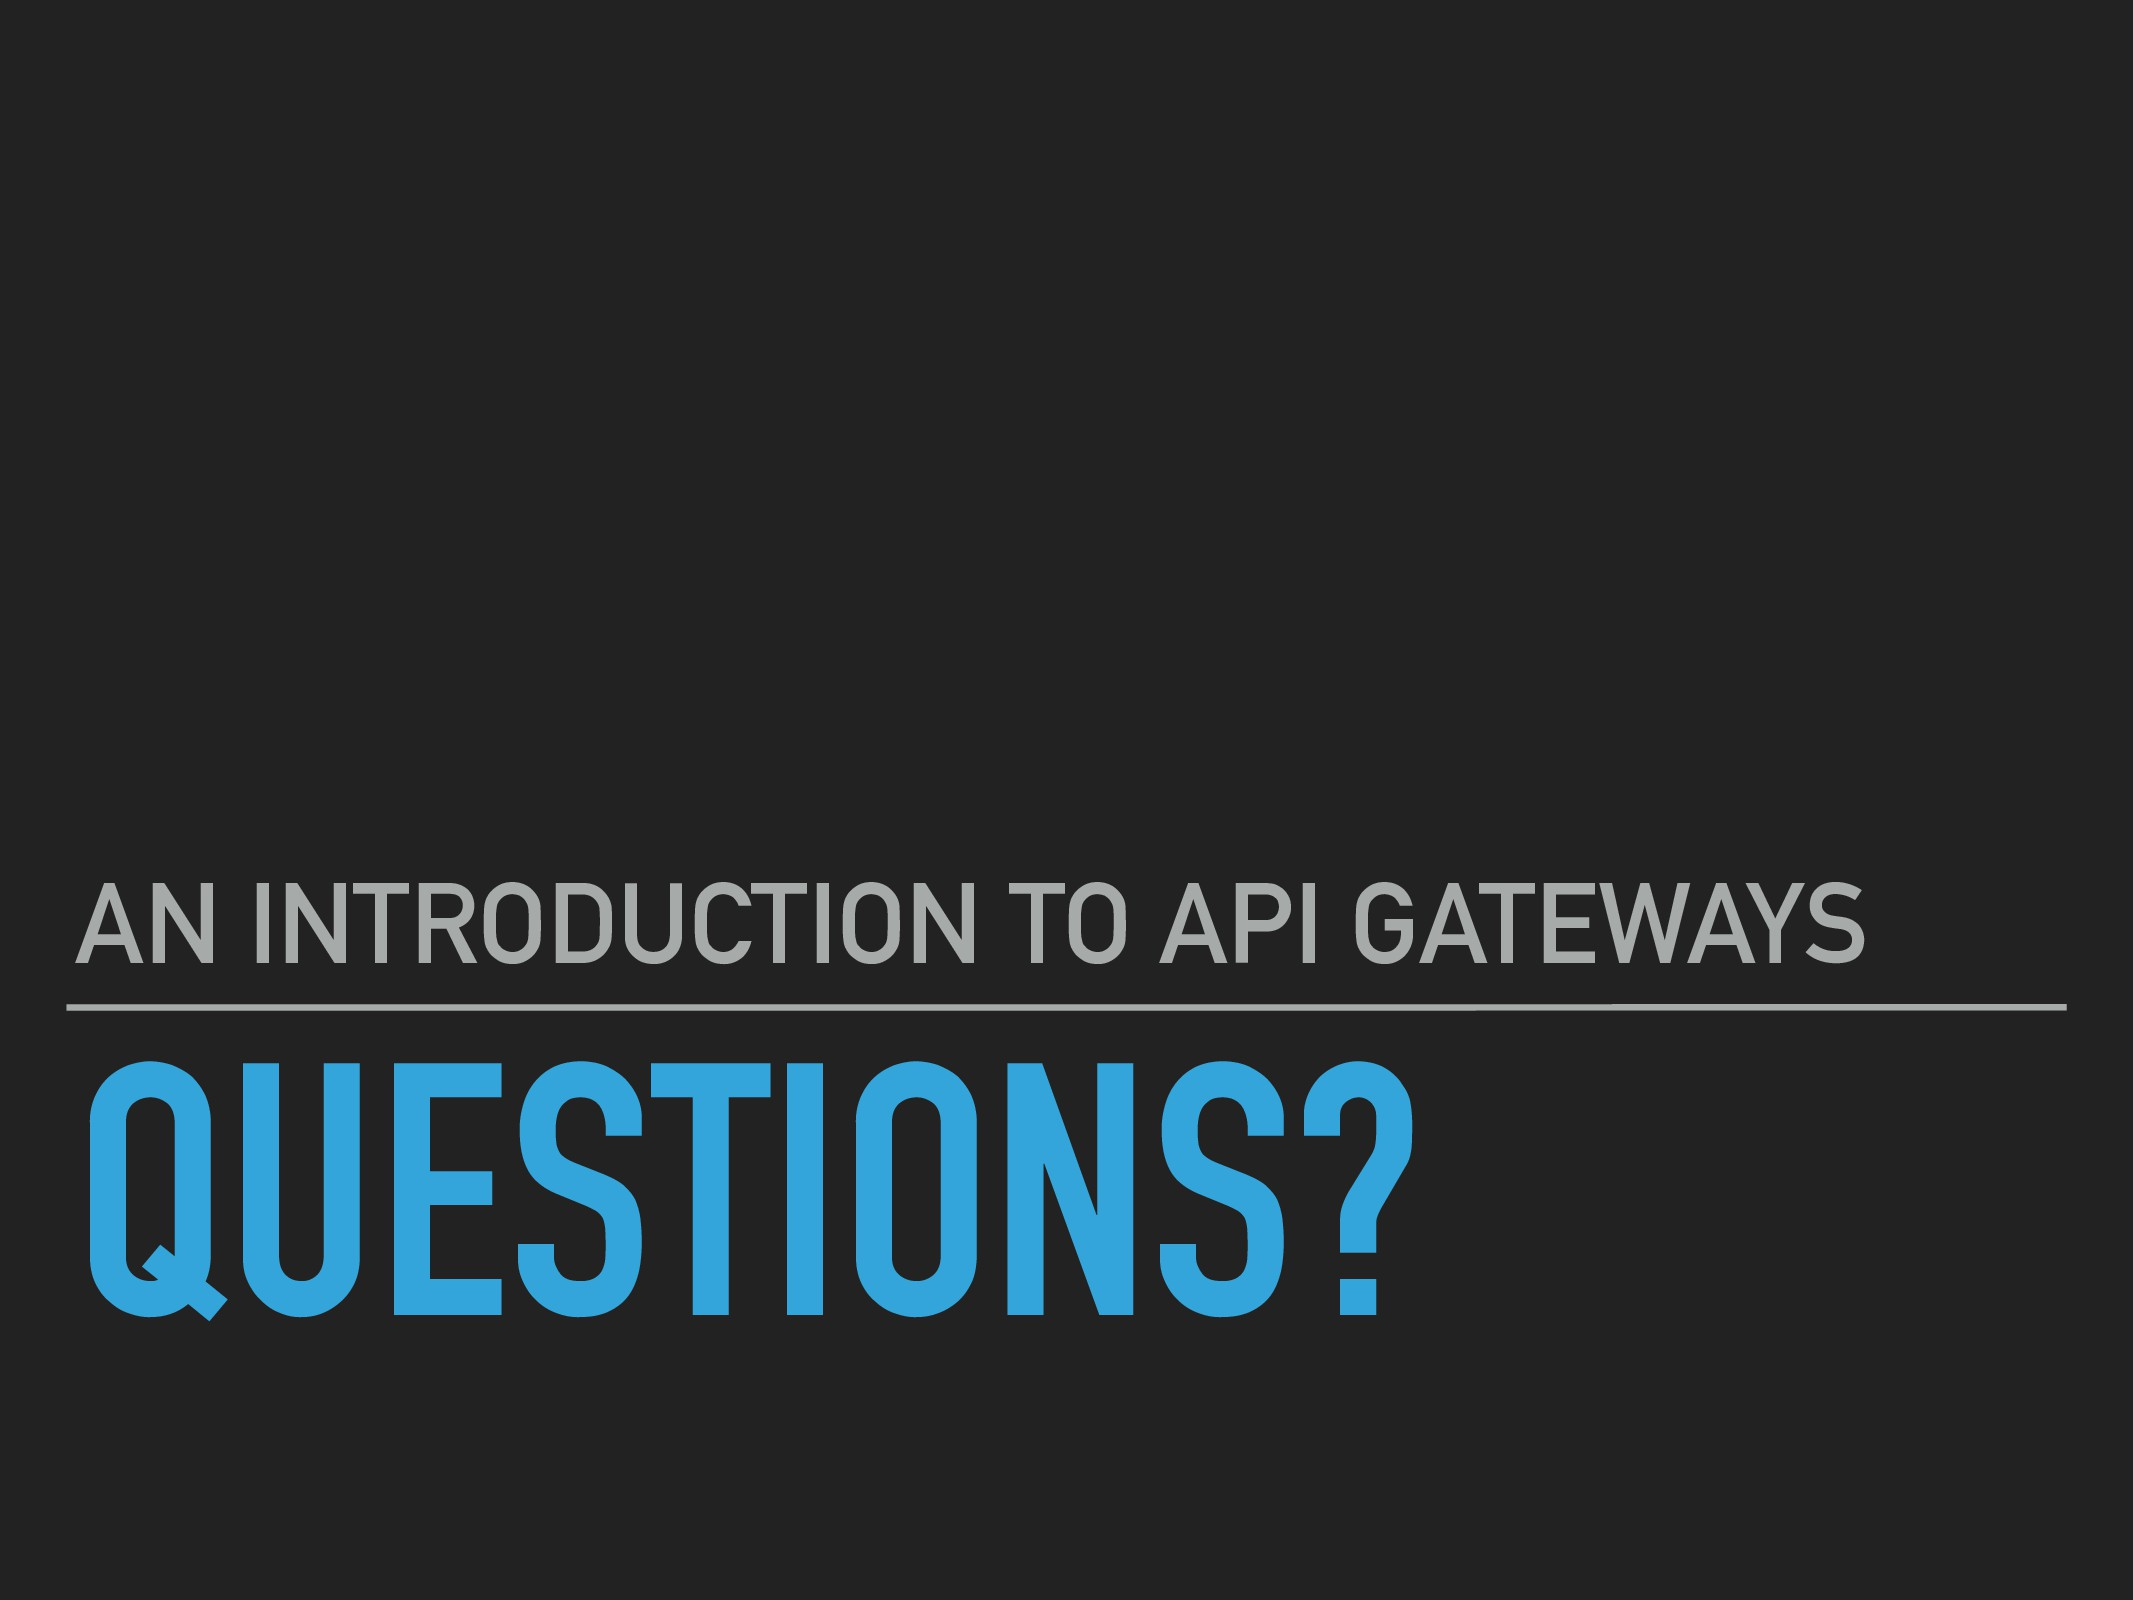 QUESTIONS? AN INTRODUCTION TO API GATEWAYS